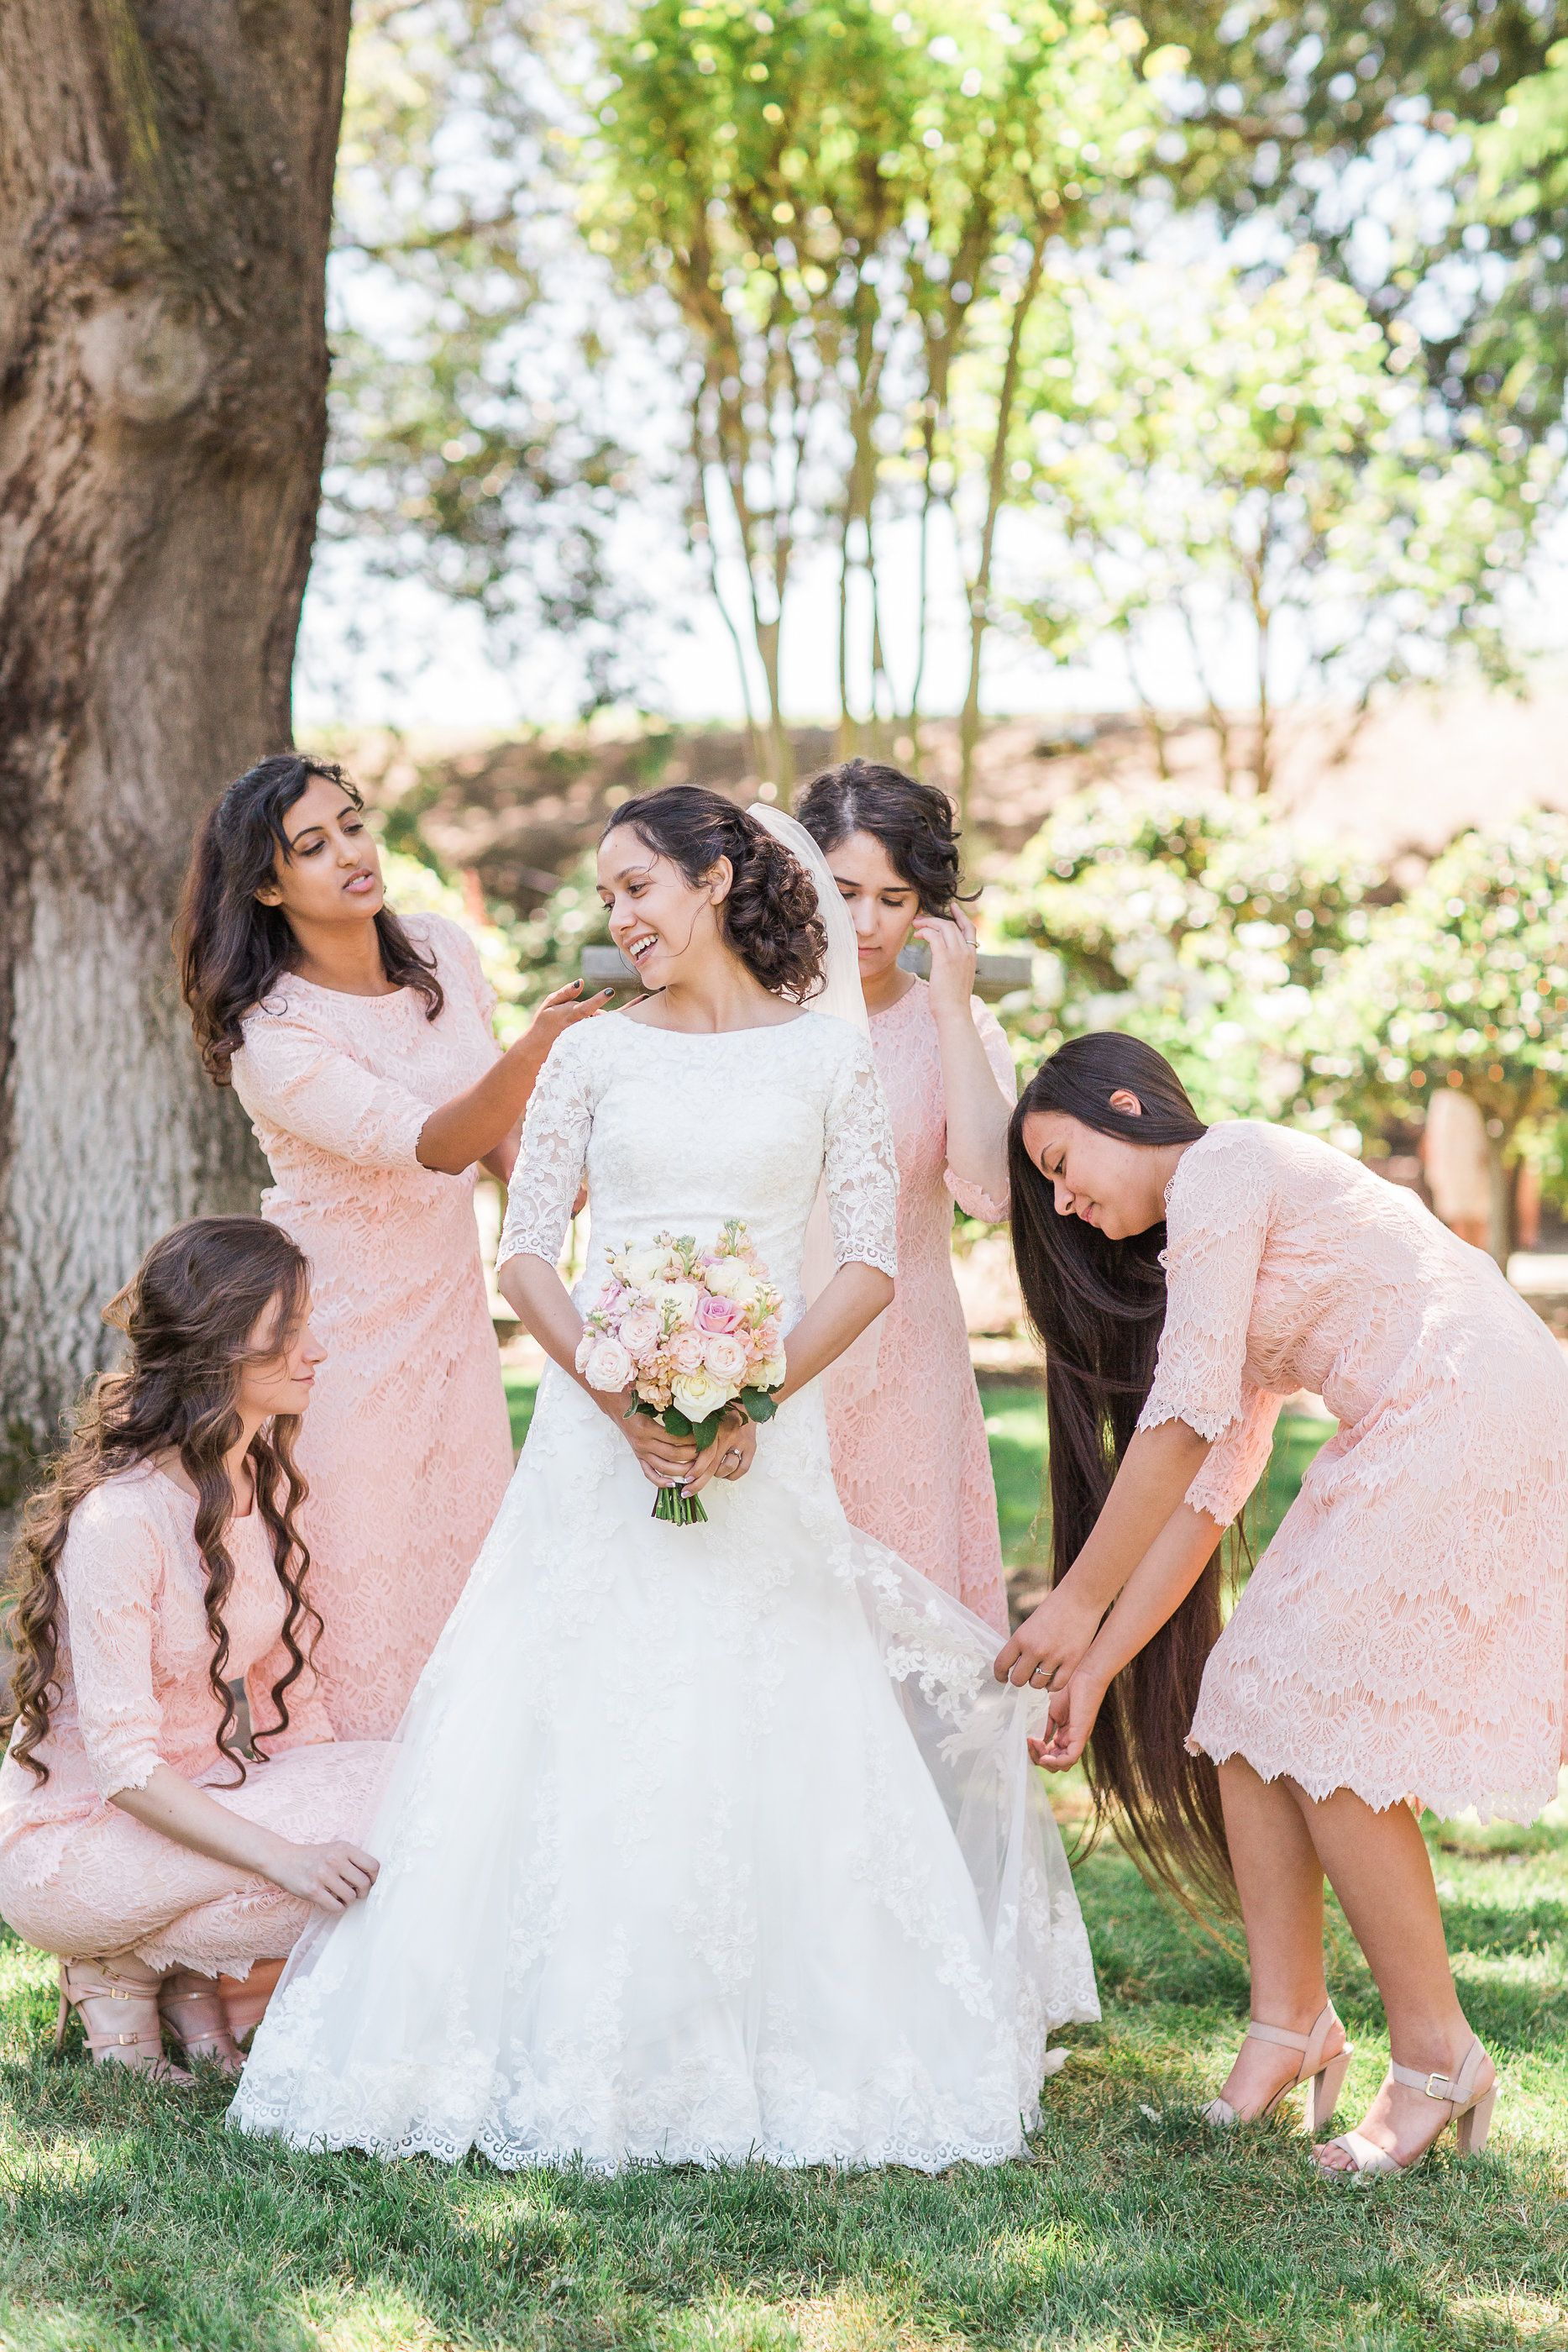 A night in paris more colors modest bridesmaid dresses blush modest bridesmaid dresses by dainty jewells blush pink lace night in paris dress photo ombrellifo Gallery